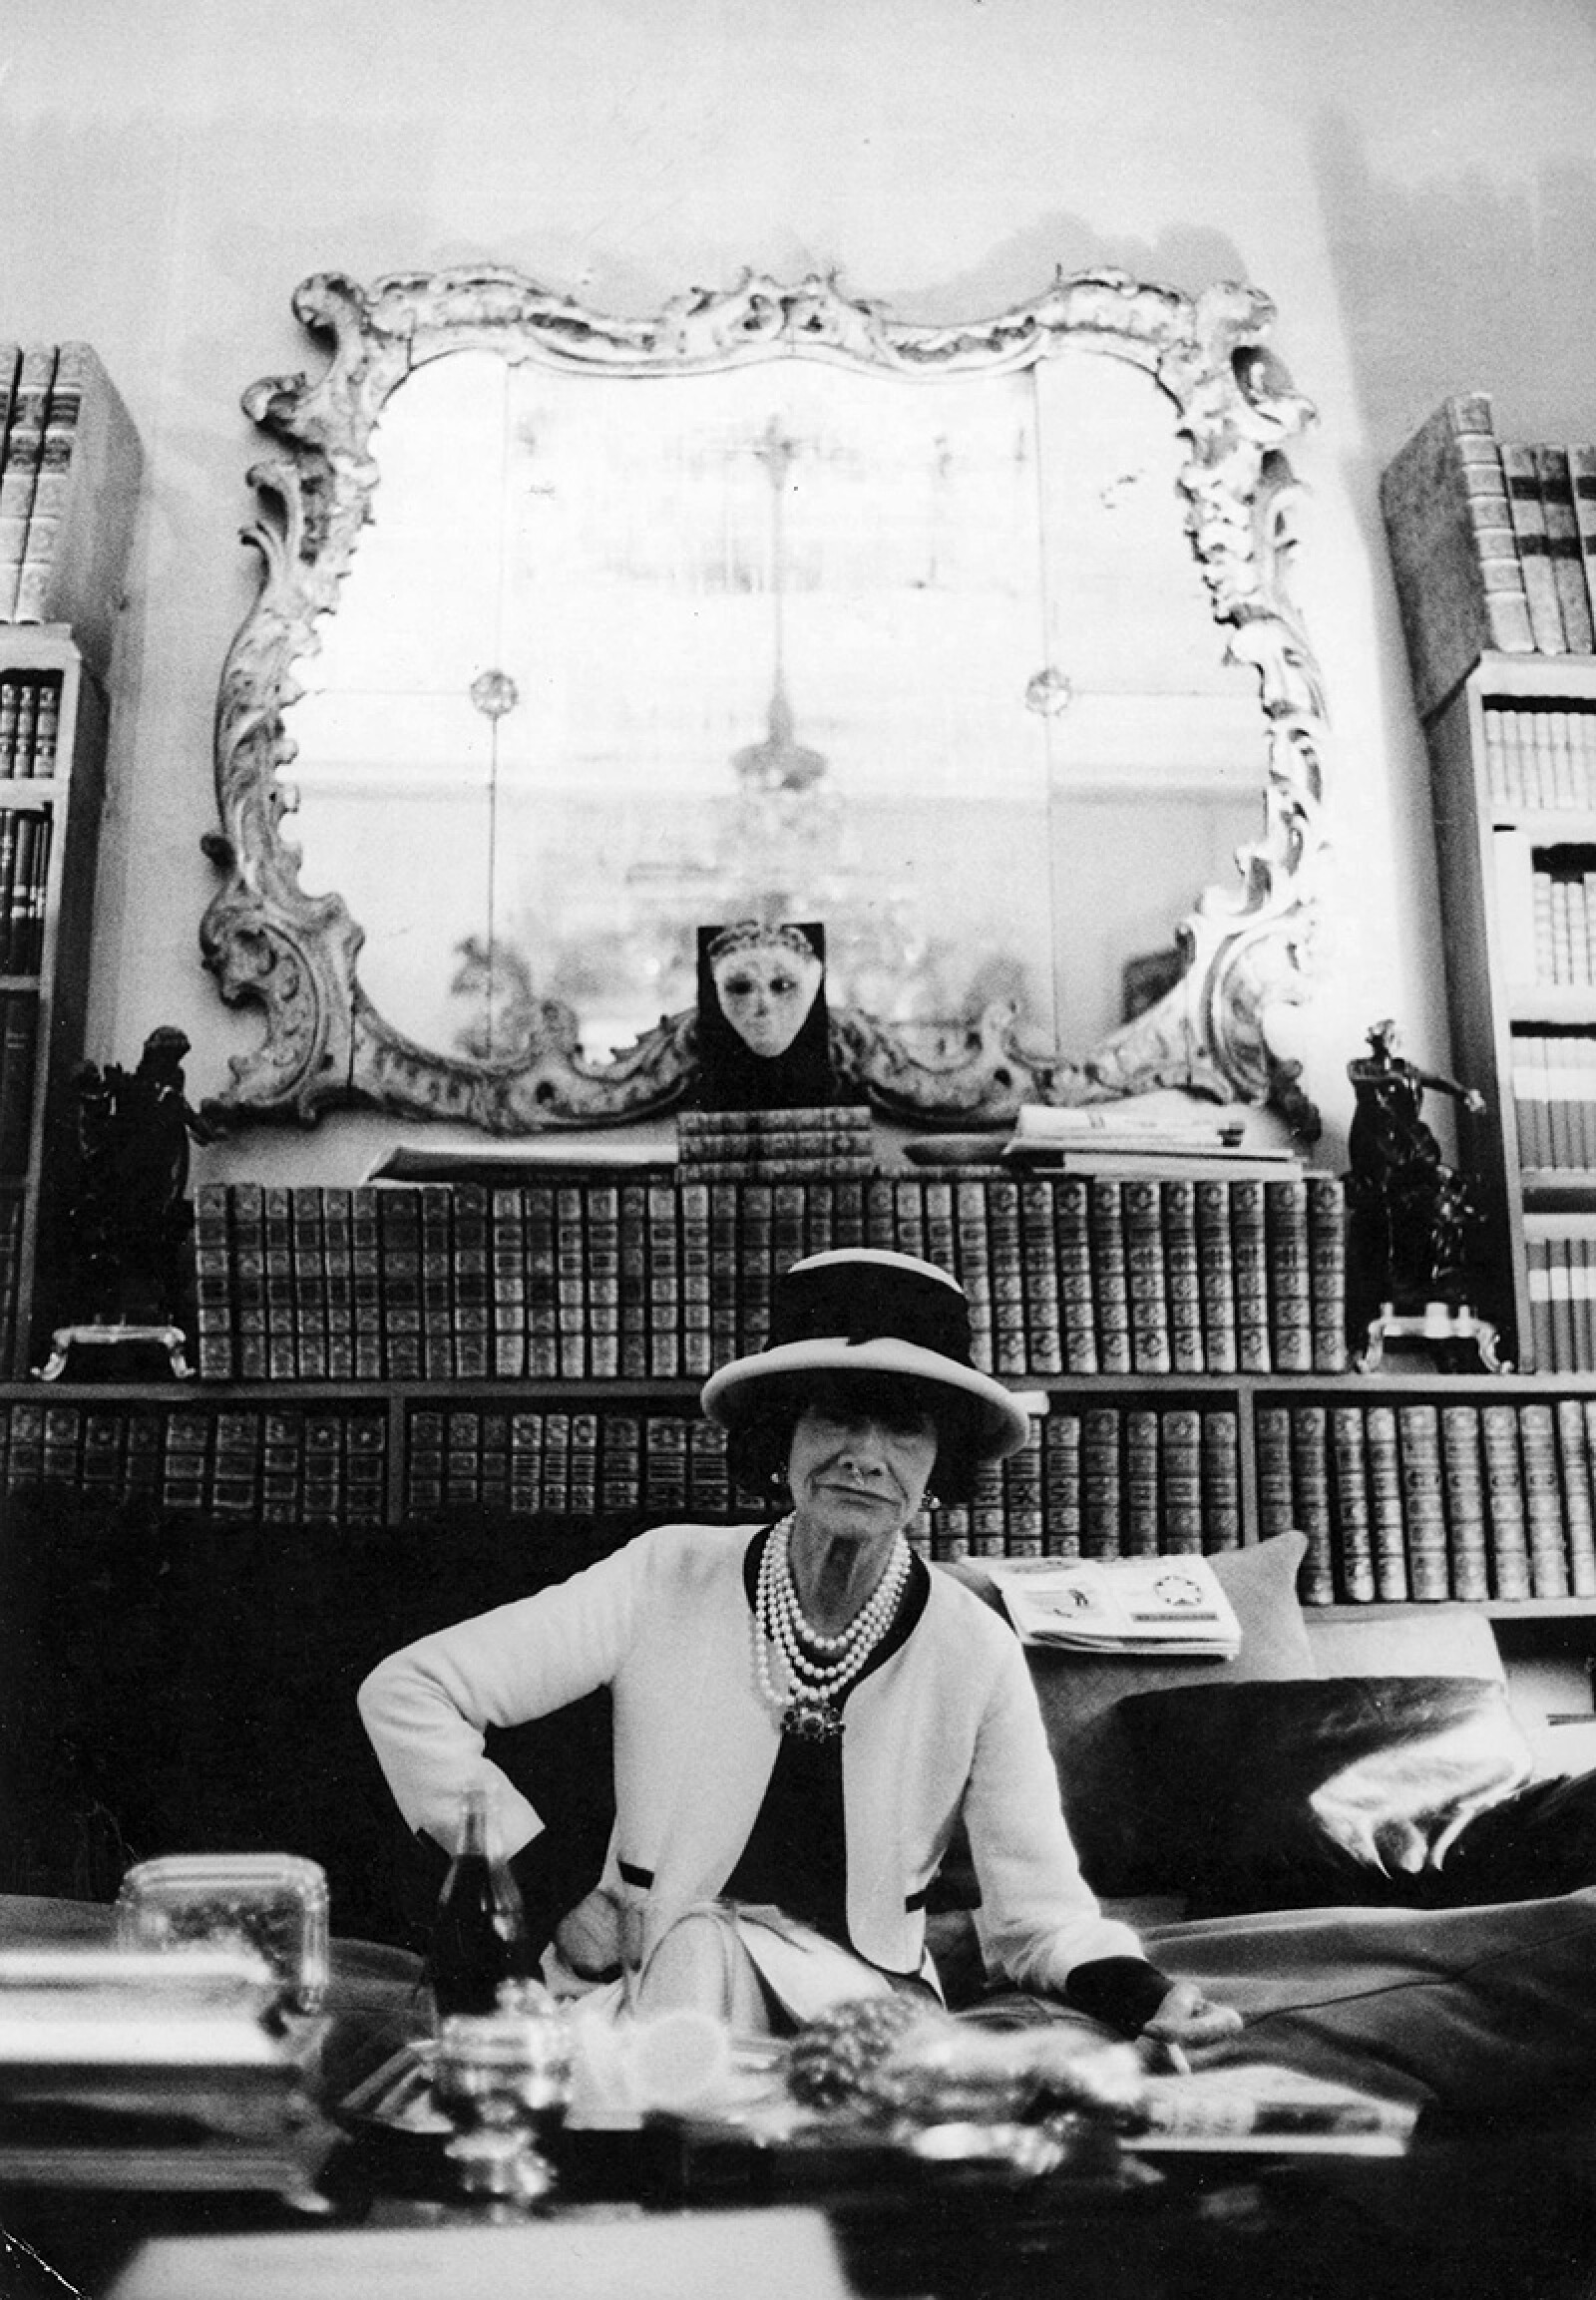 COCO CHANEL AT HER PRIVATE APARTMENT, FRANCE - 1964